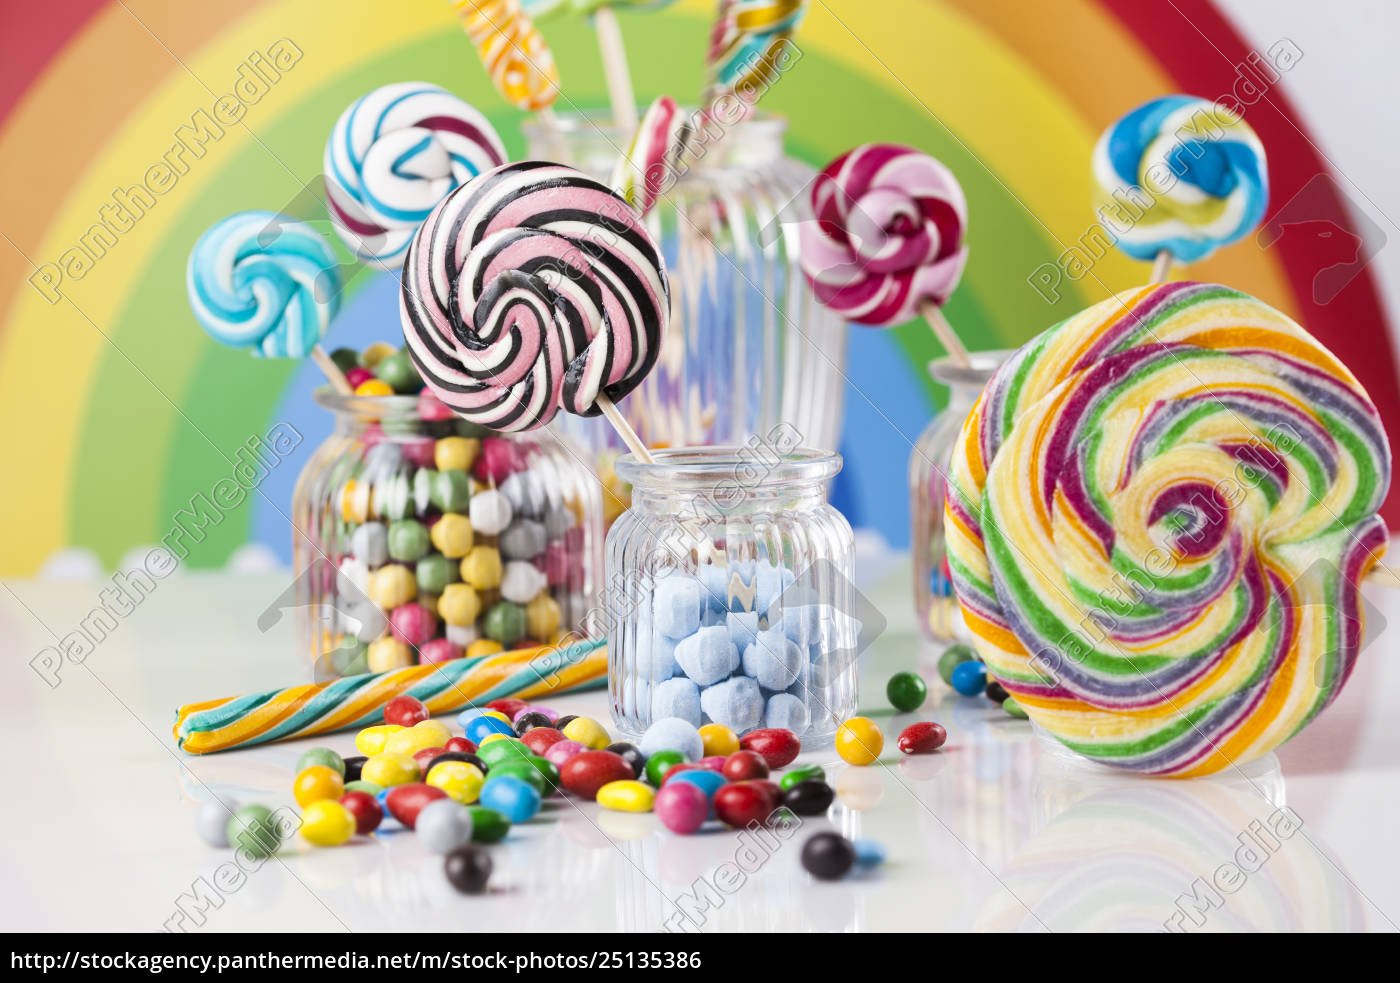 colorful, lollipops, and, different, colored, round - 25135386